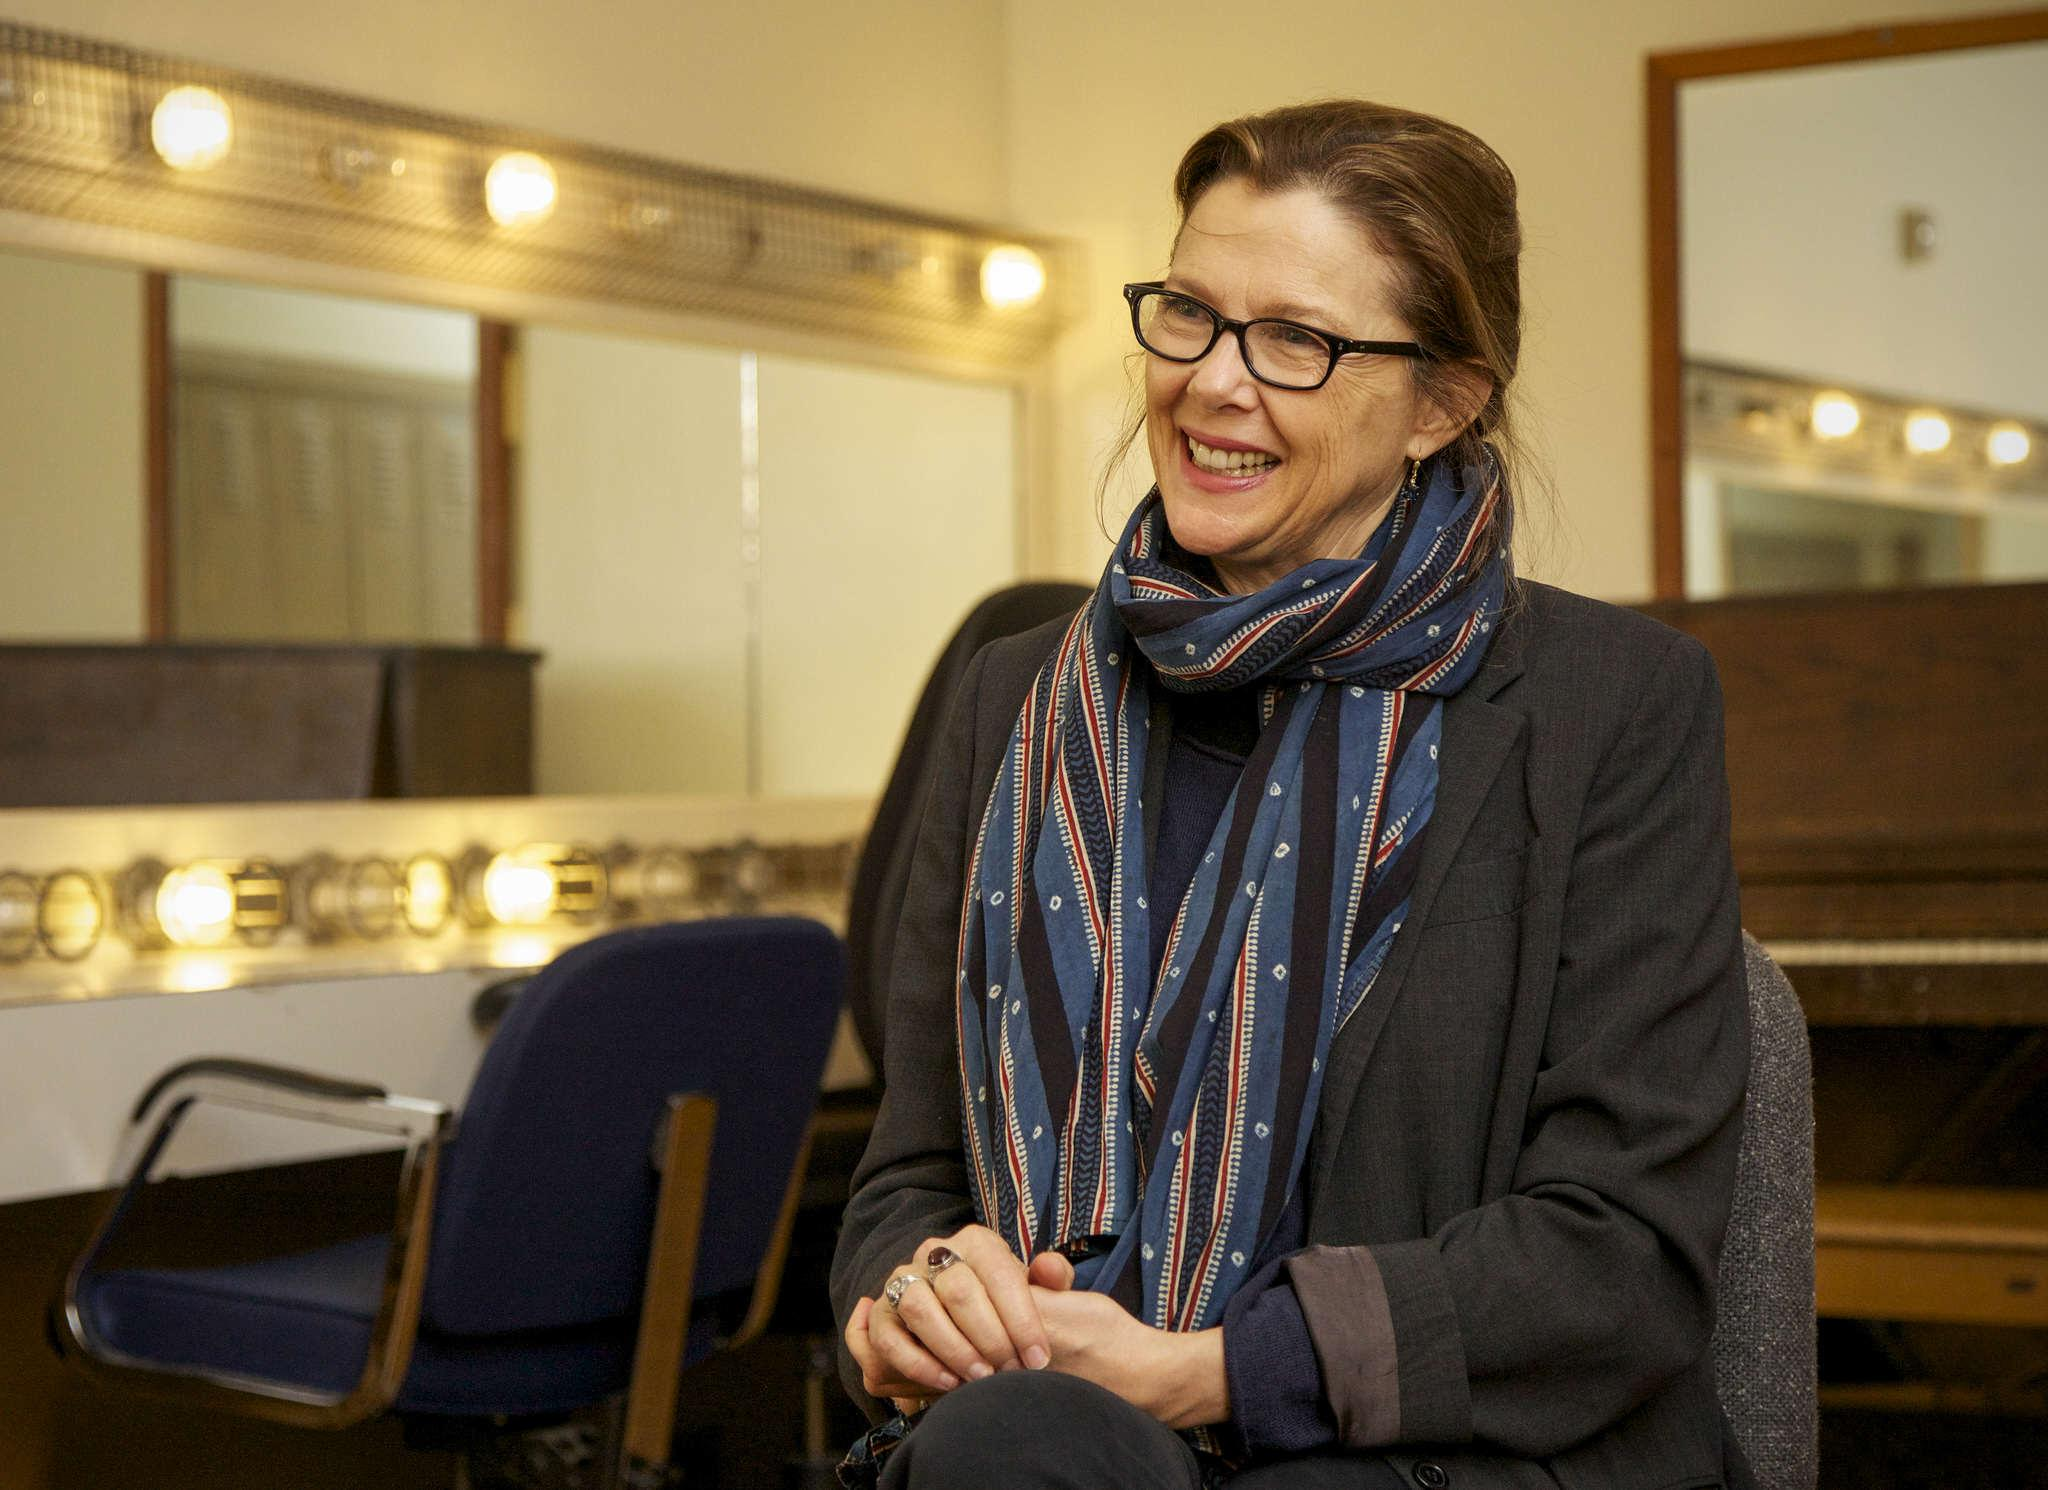 Actress Annette Bening revisits alma mater and treats theatre and cinema students to inspiring talk